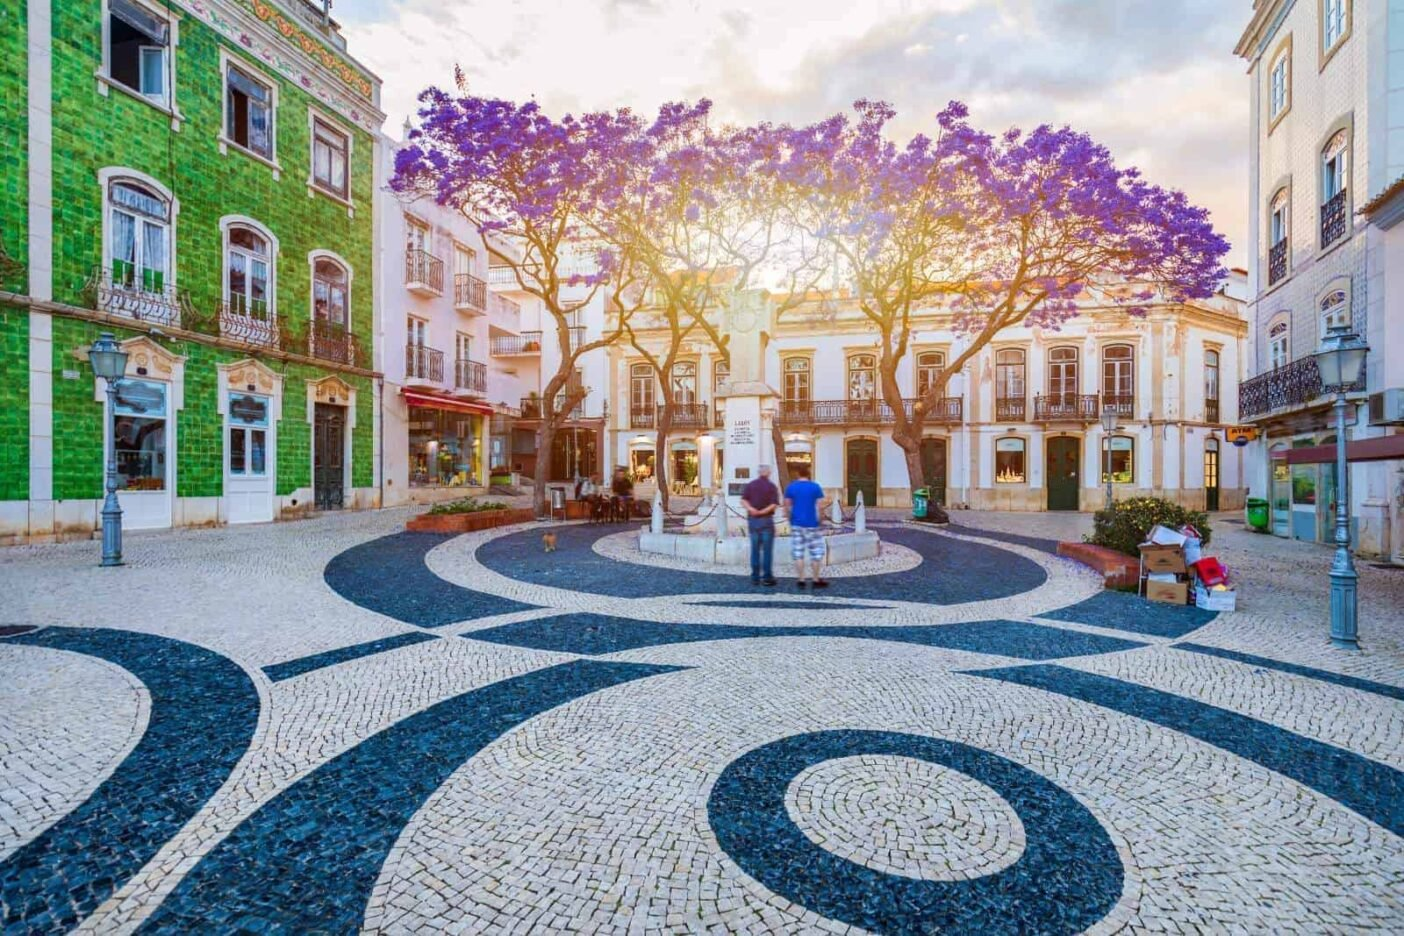 A spacious town square in Lagos, Portugal with white and blue mosaic and a tree full of purple blossom in the centre